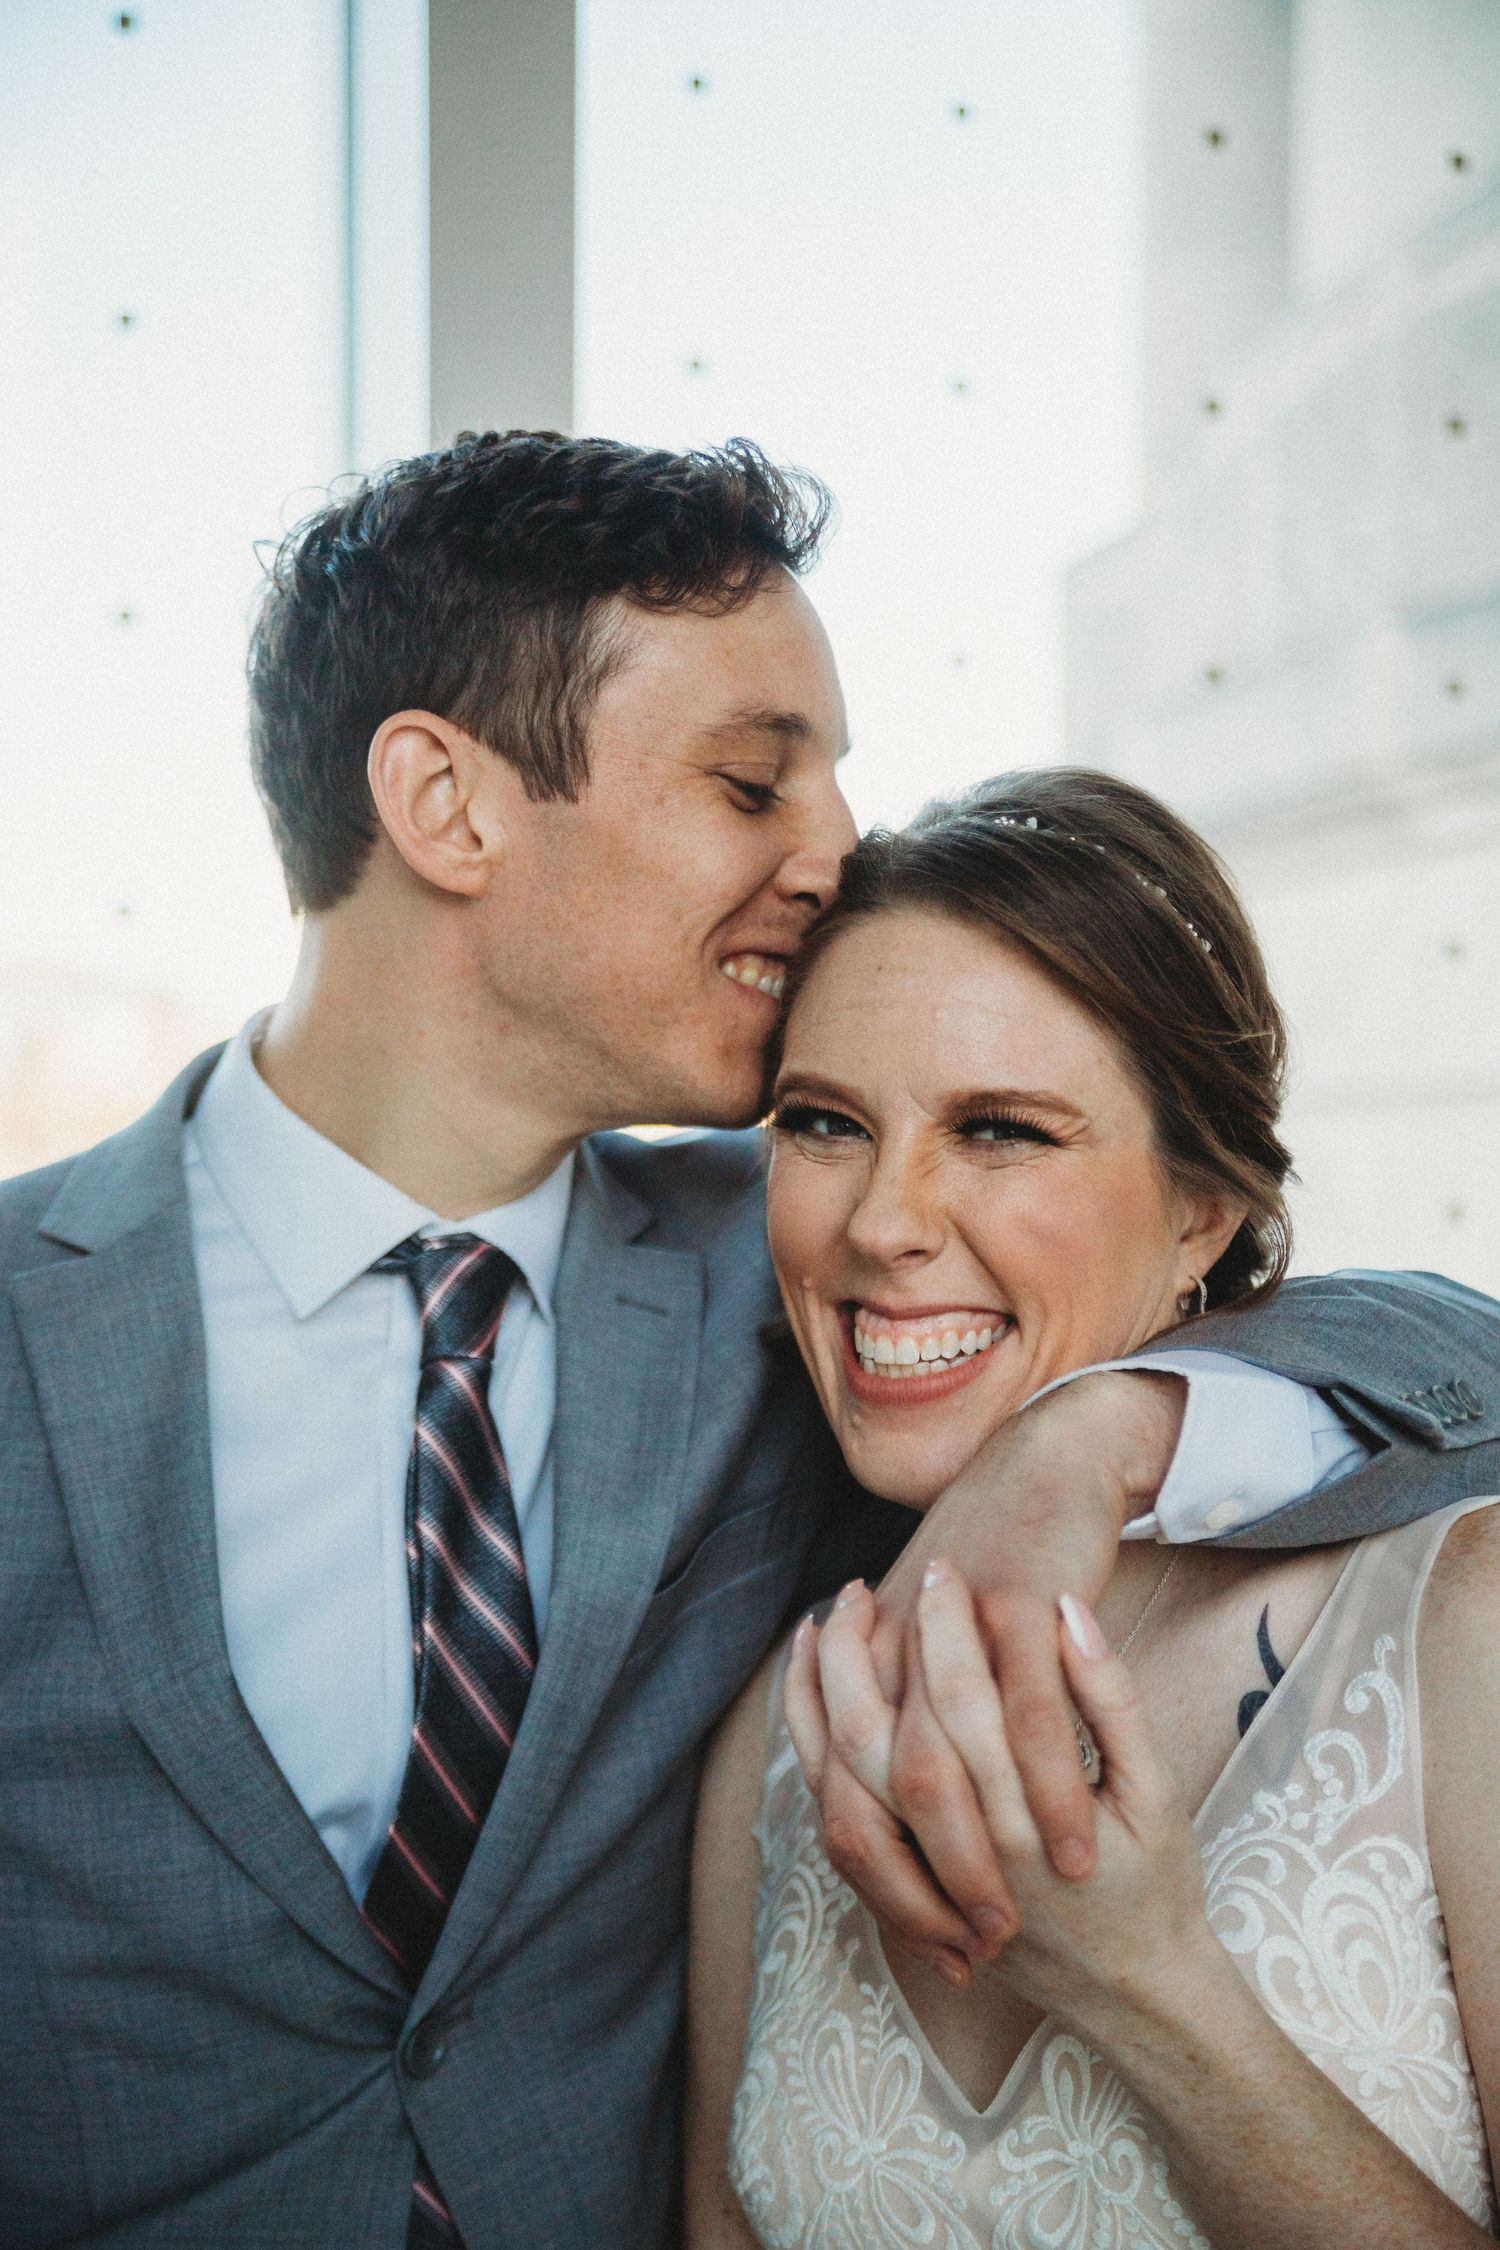 groom whispering sweet nothings into brides ear